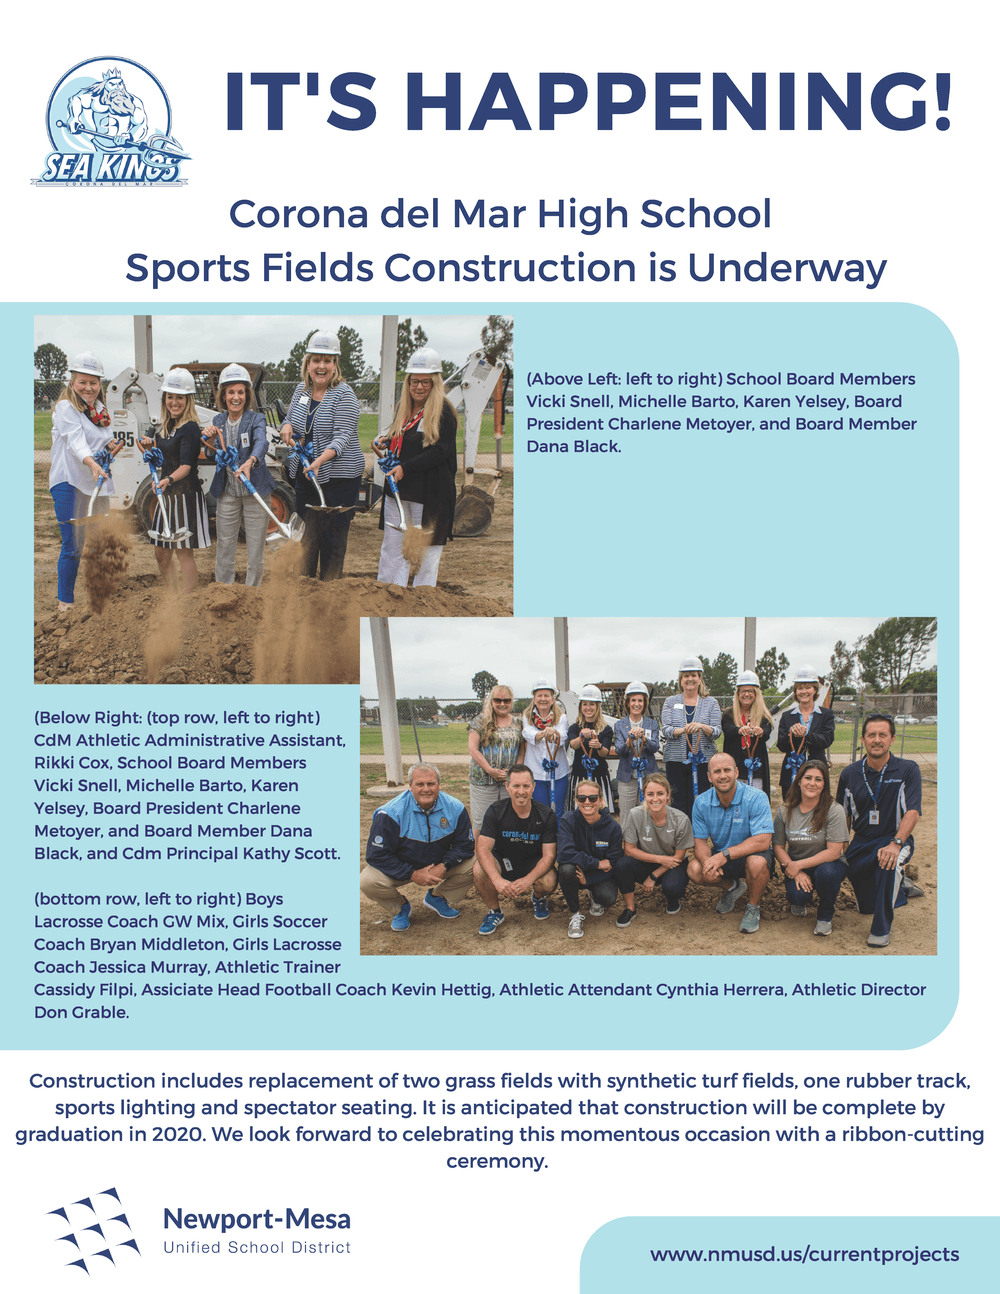 CdMHS Construction Announcement